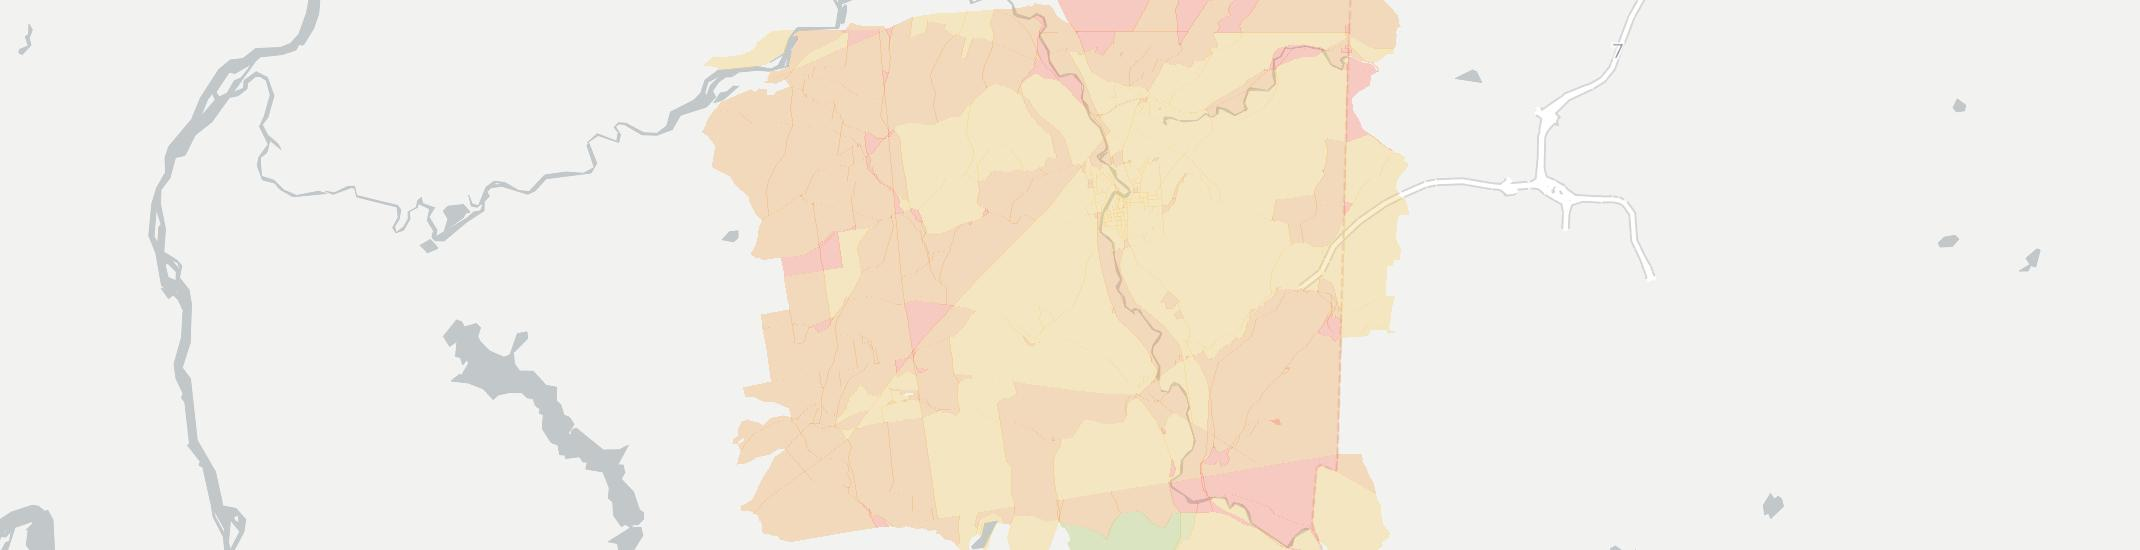 Hoosick Falls Internet Competition Map. Click for interactive map.